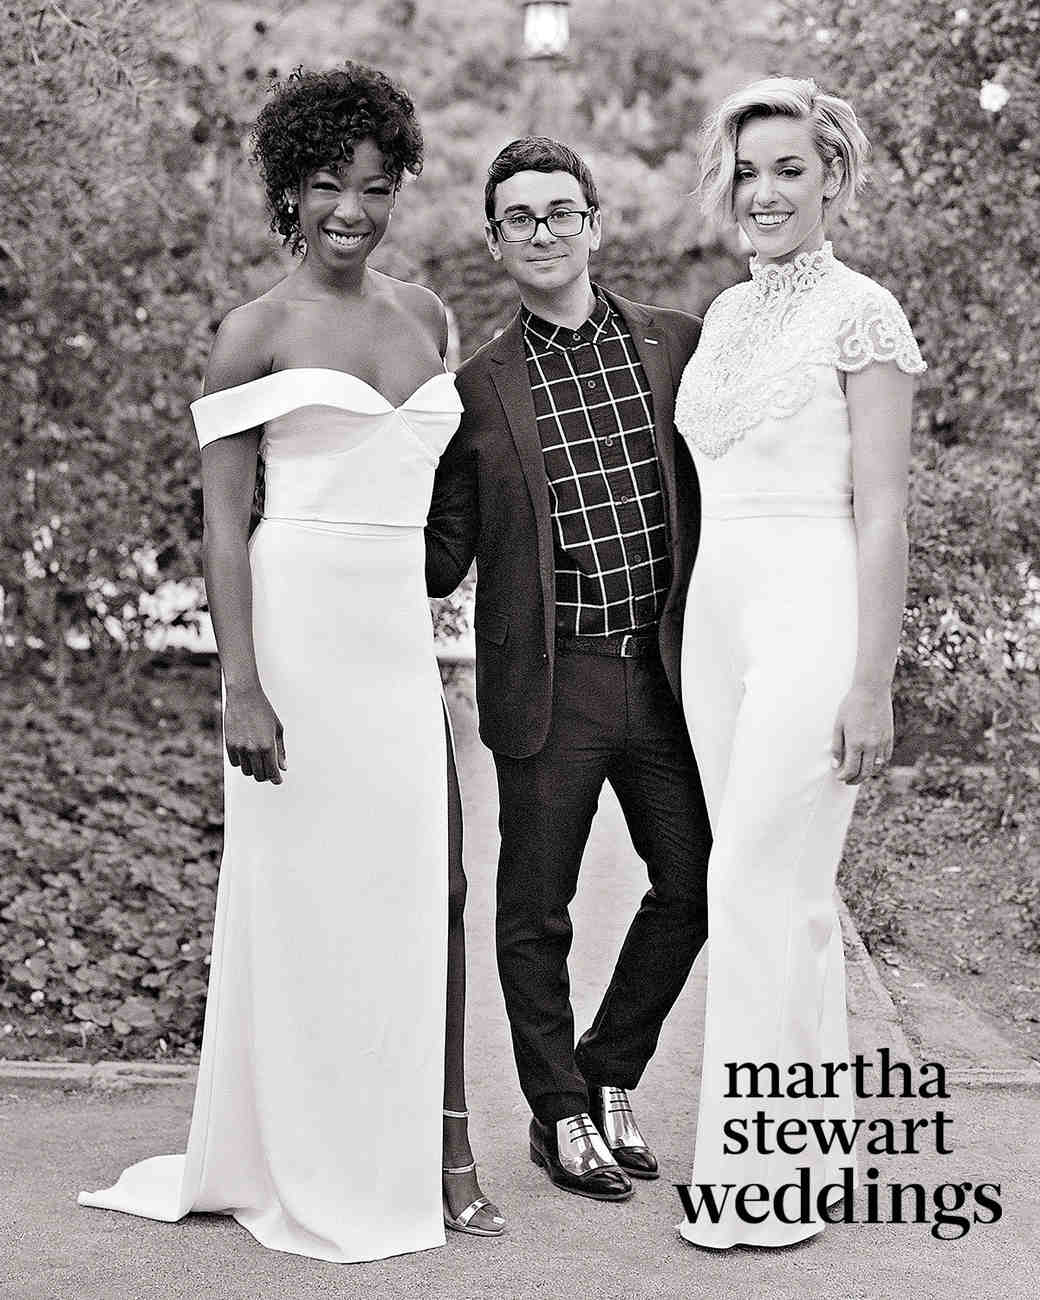 Exclusive: See Samira Wiley and Lauren Morelli's ...